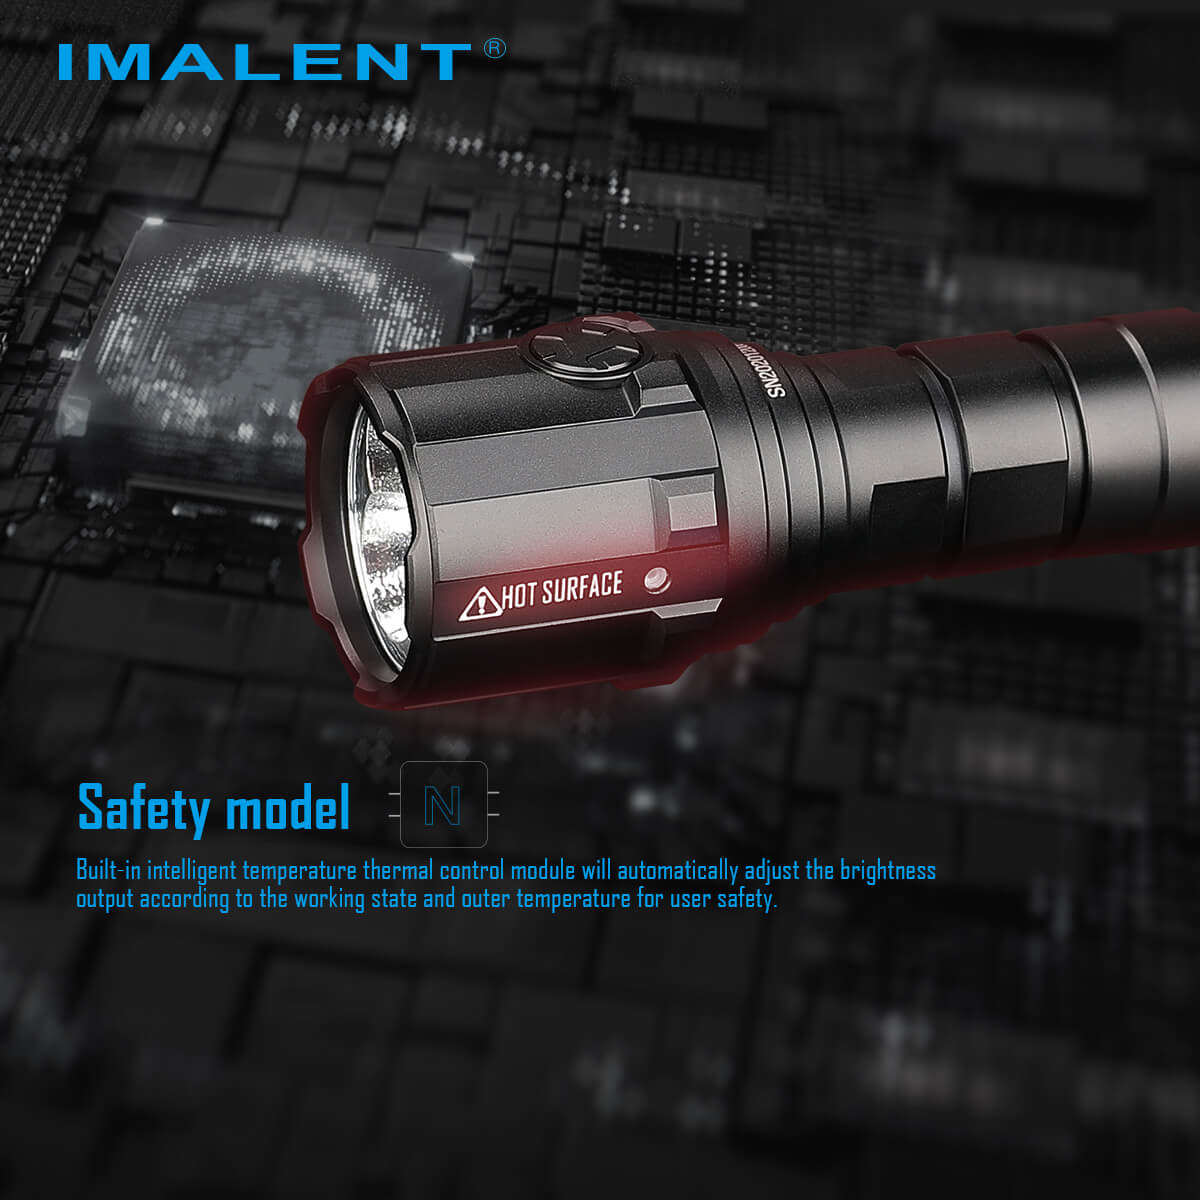 IMALENT R30C Power LED Flashlight 9000 Lumens Type-C USB Rechargeable Flashlight by 21700 Battery for Hunting, Search and Rescue enlarge